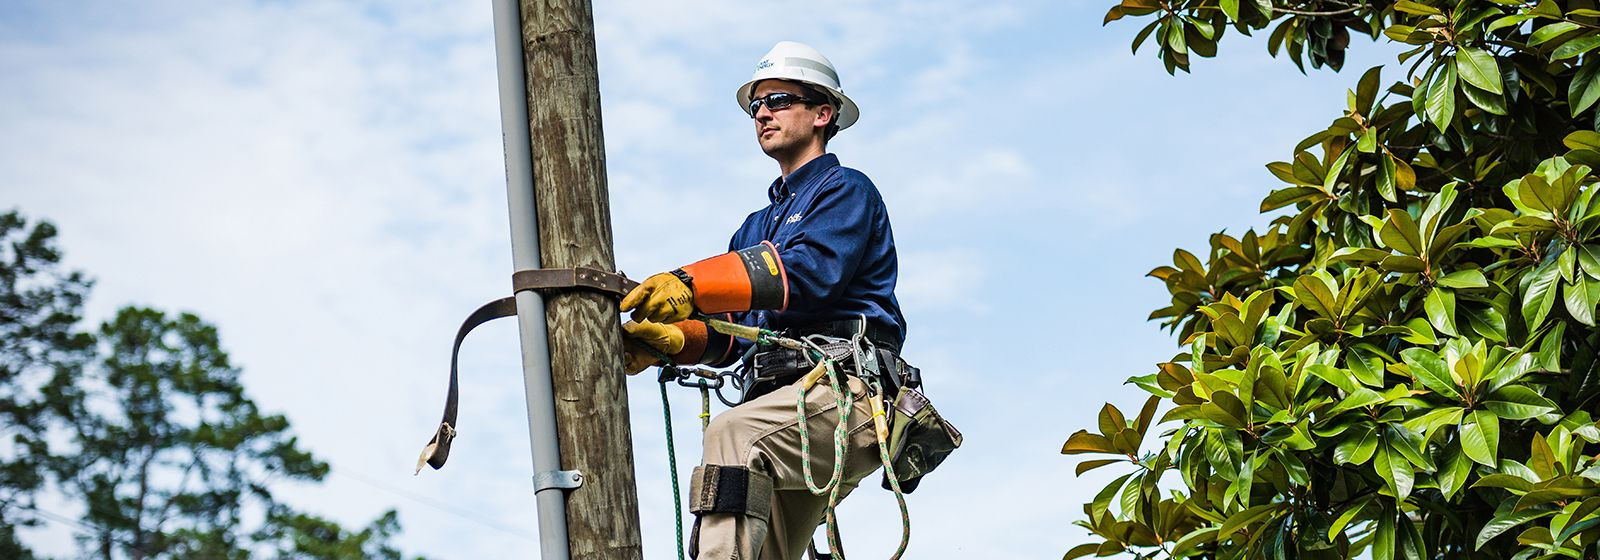 Test your knowledge of lineman lingo